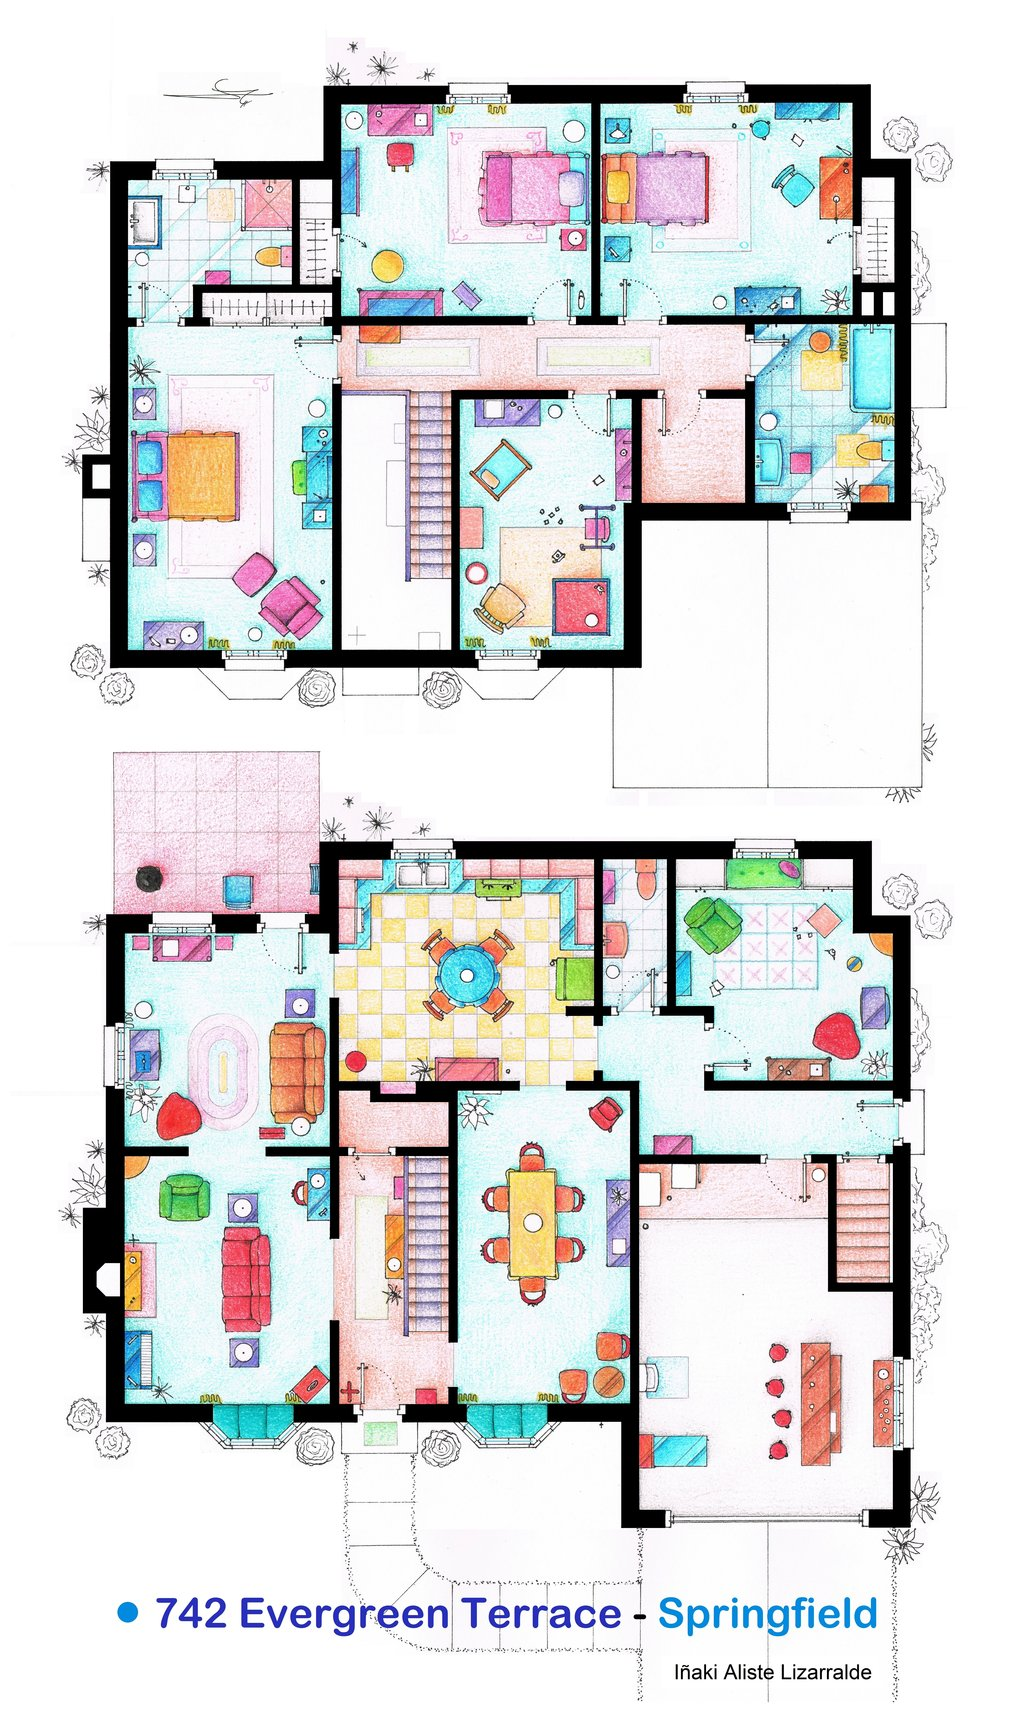 19 famous floorplans from your favorite movie and TV show homes – Sitcom House Floor Plans